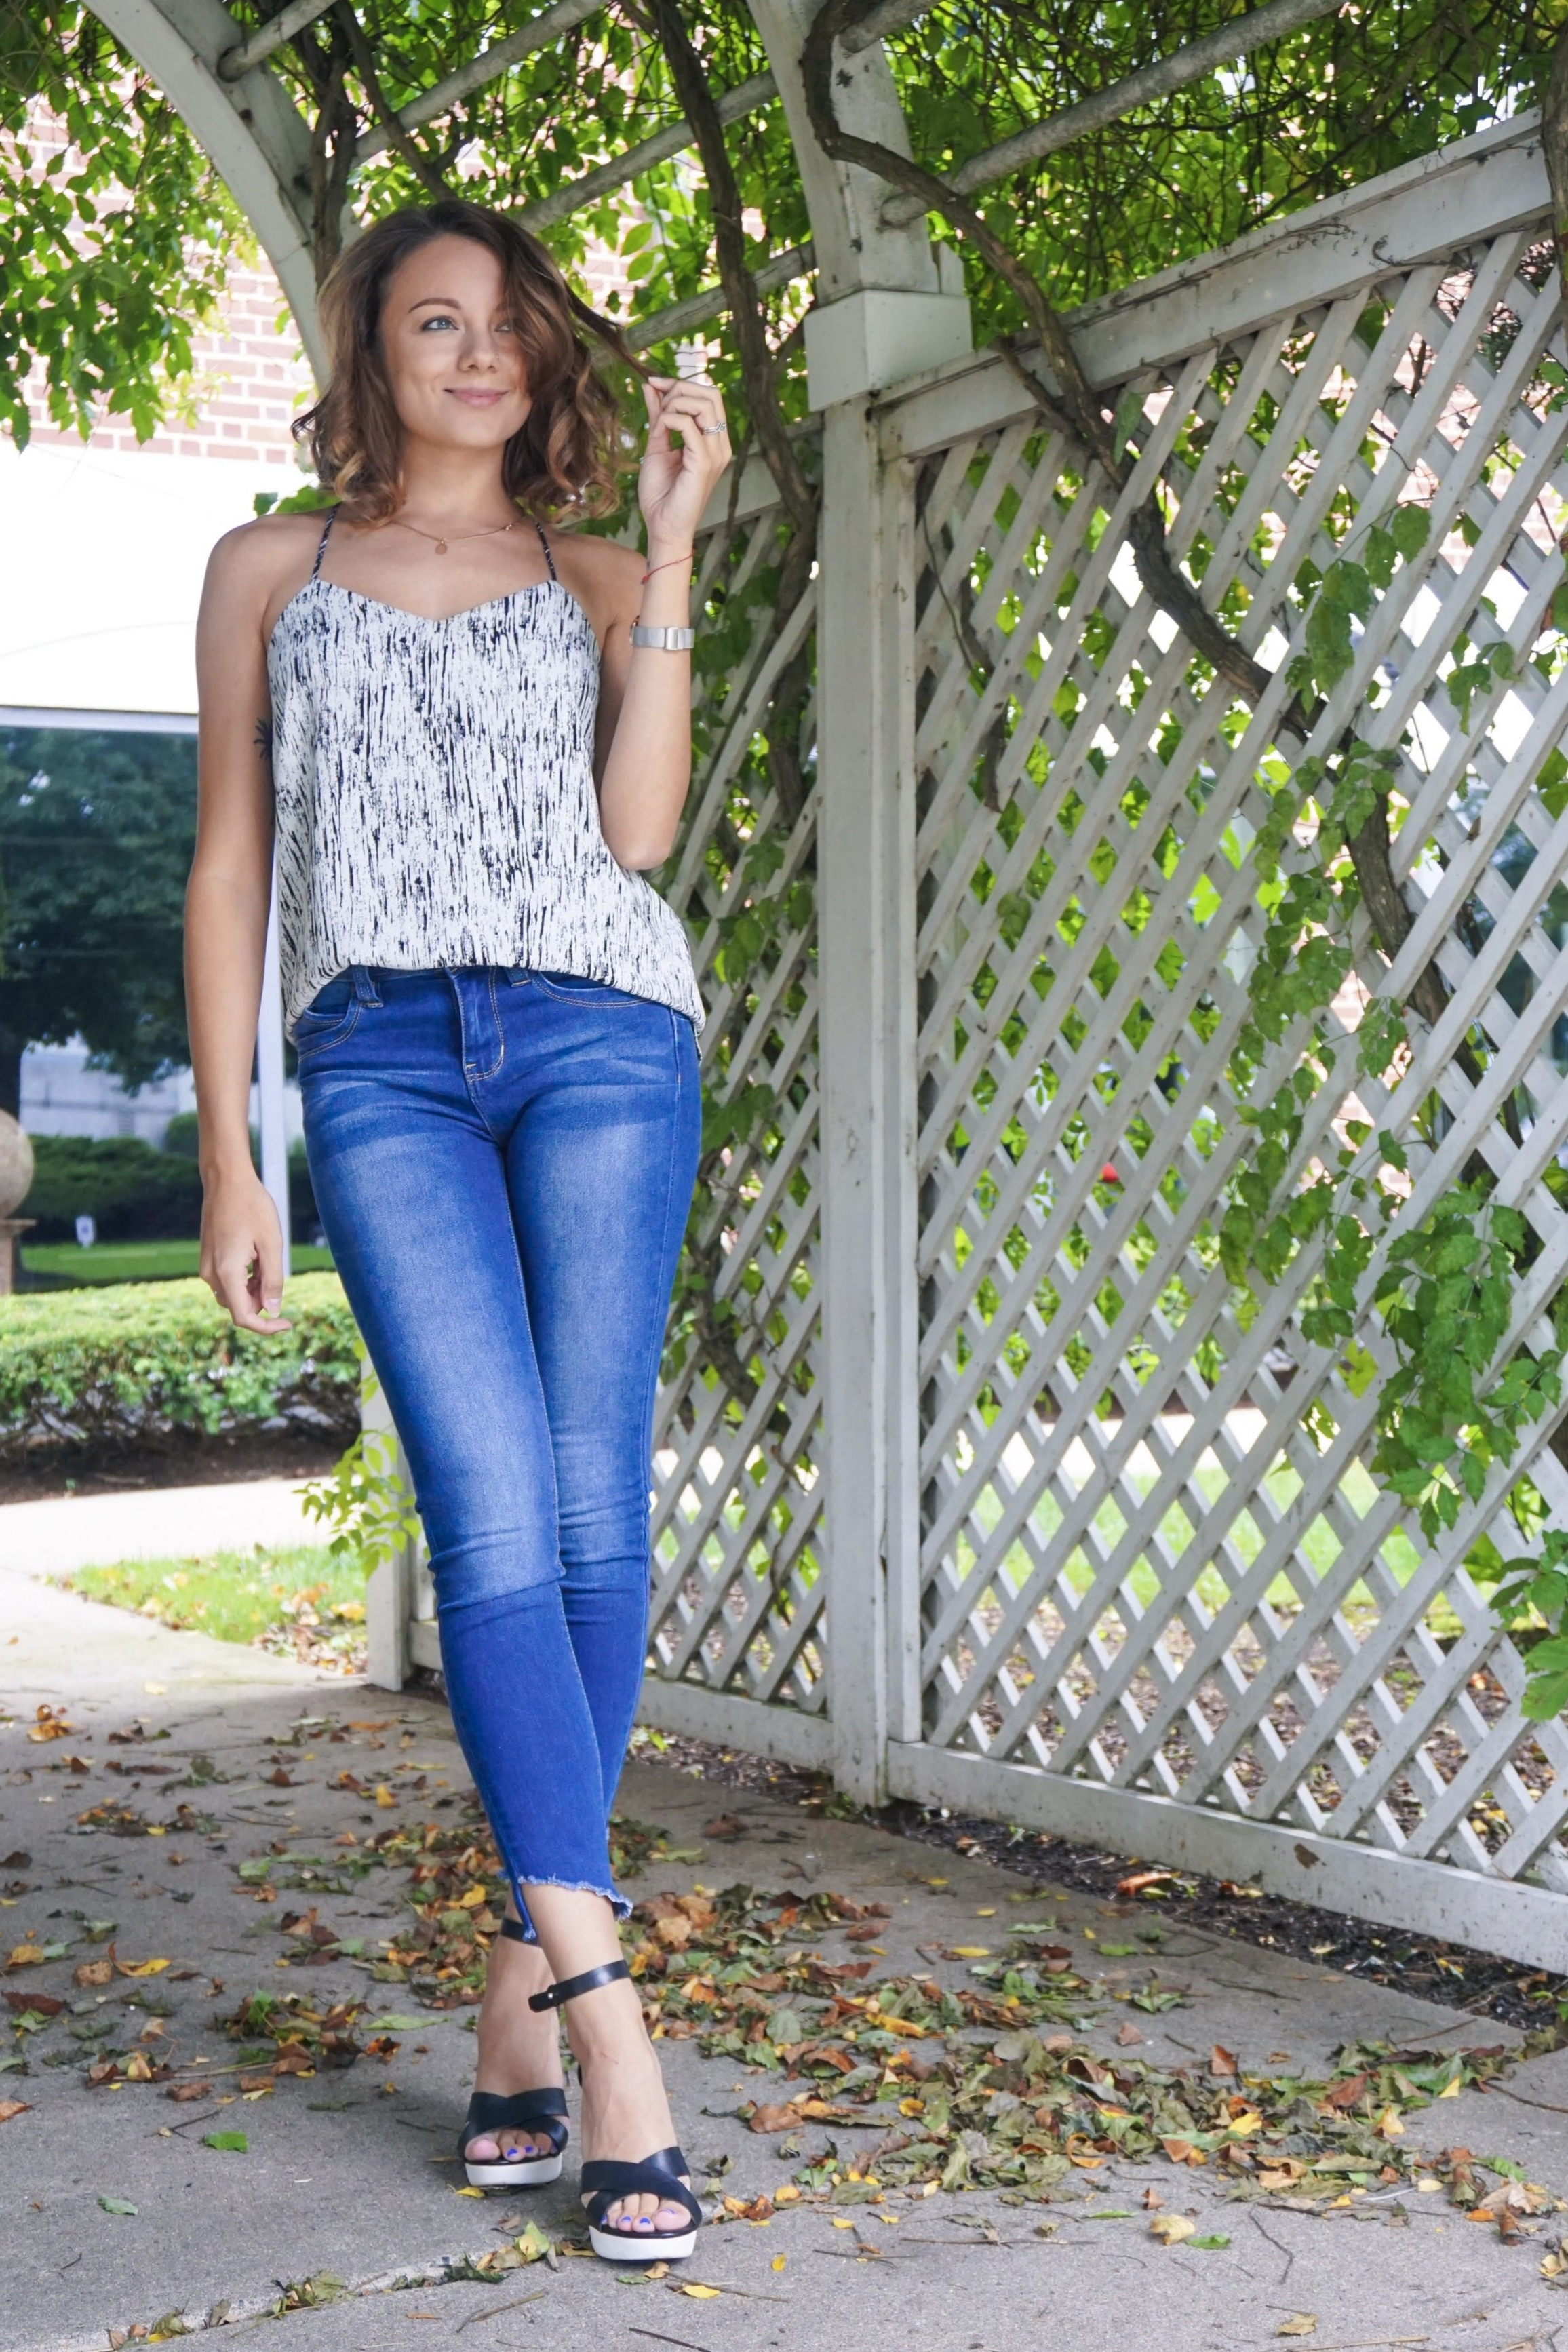 A fashion blogger wearing denim capris, black and white tank, and black and white wedges.